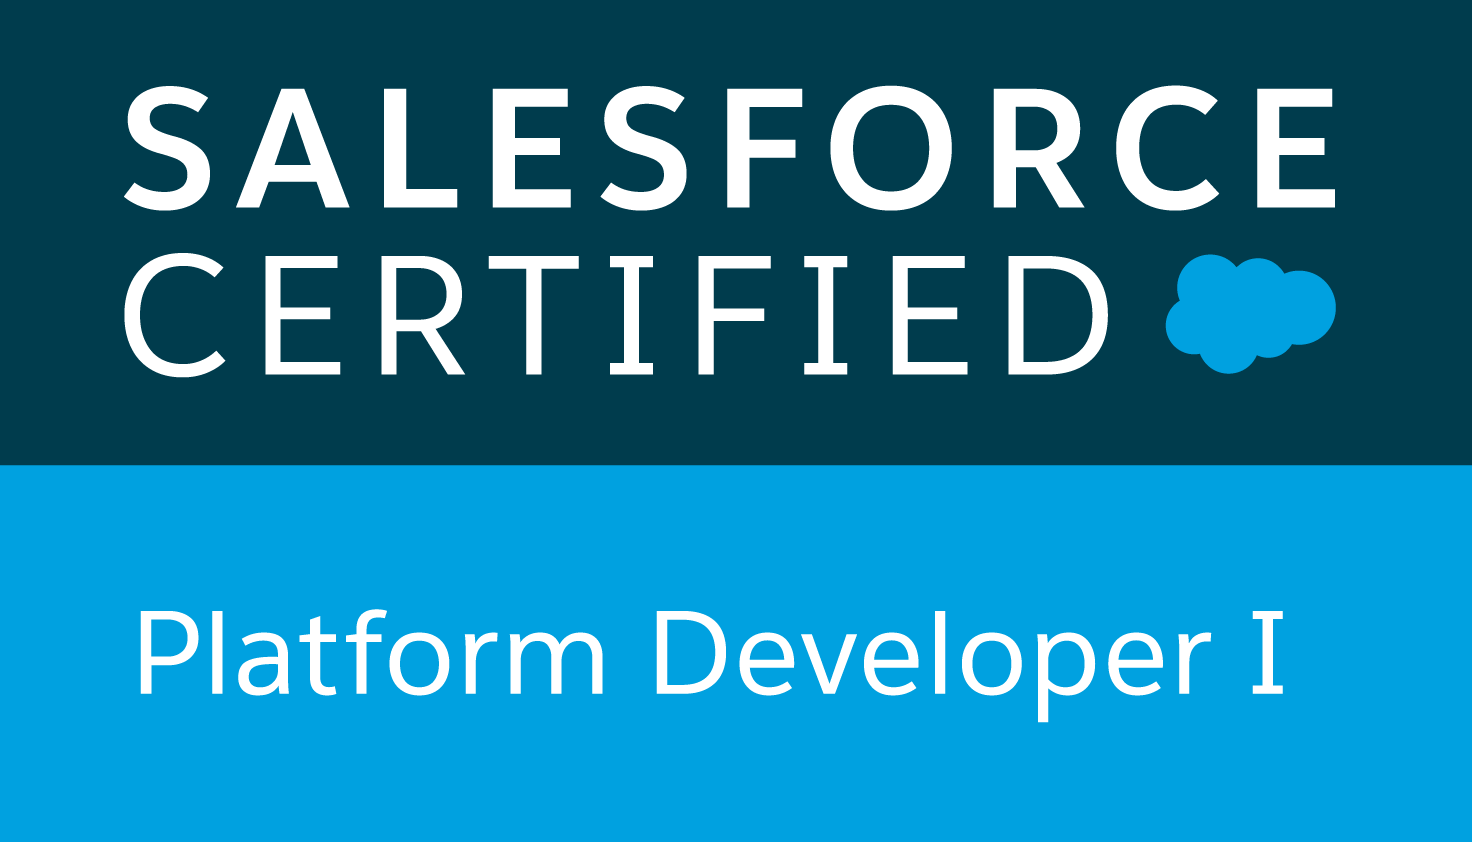 Salesforce Certified Platform Developer 1